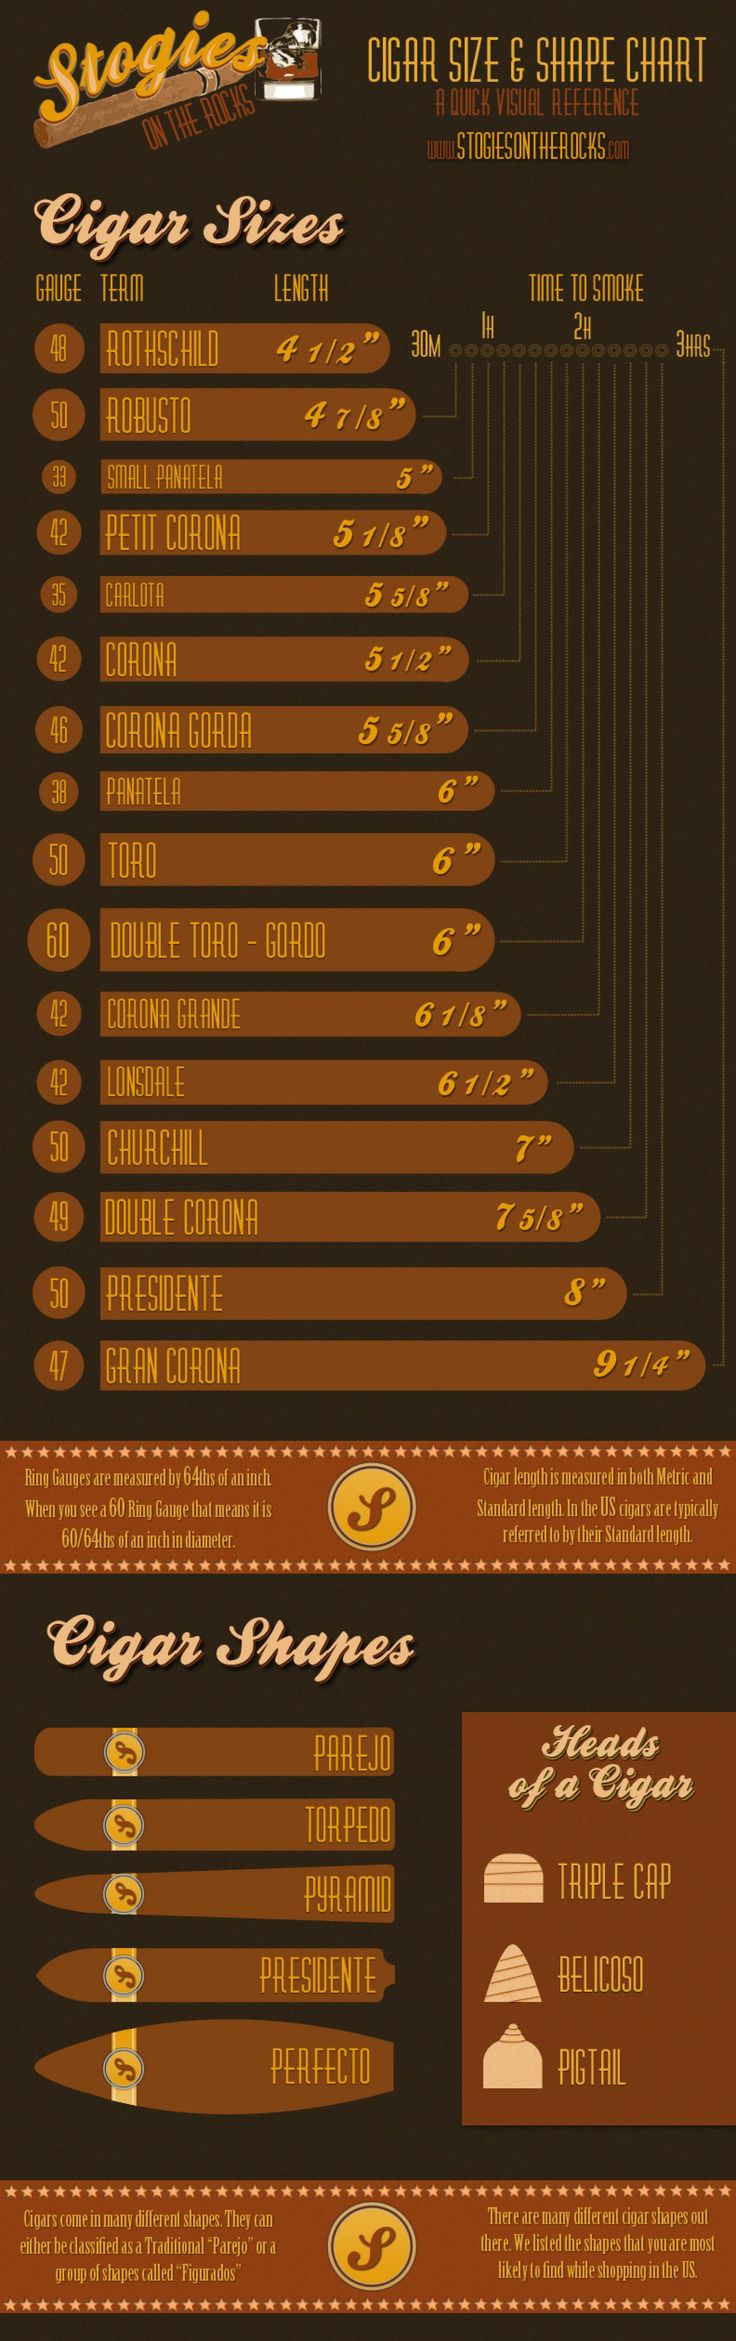 Cigar Sizes & Shapes Infographic